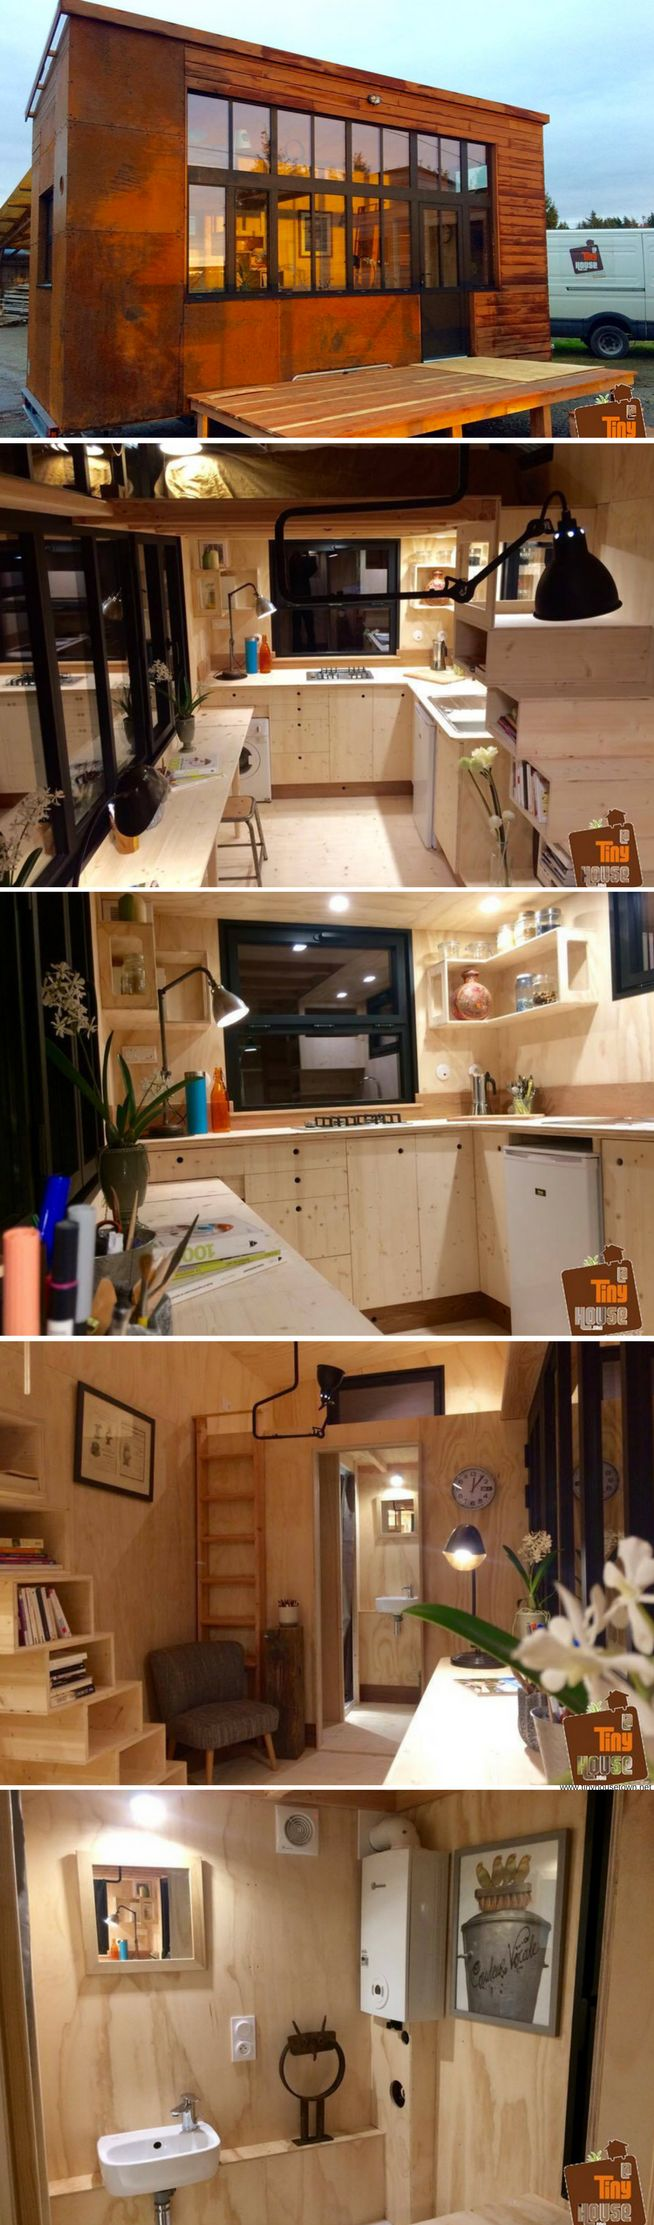 1355 best Cabane and Tiny House images on Pinterest   Small houses ...